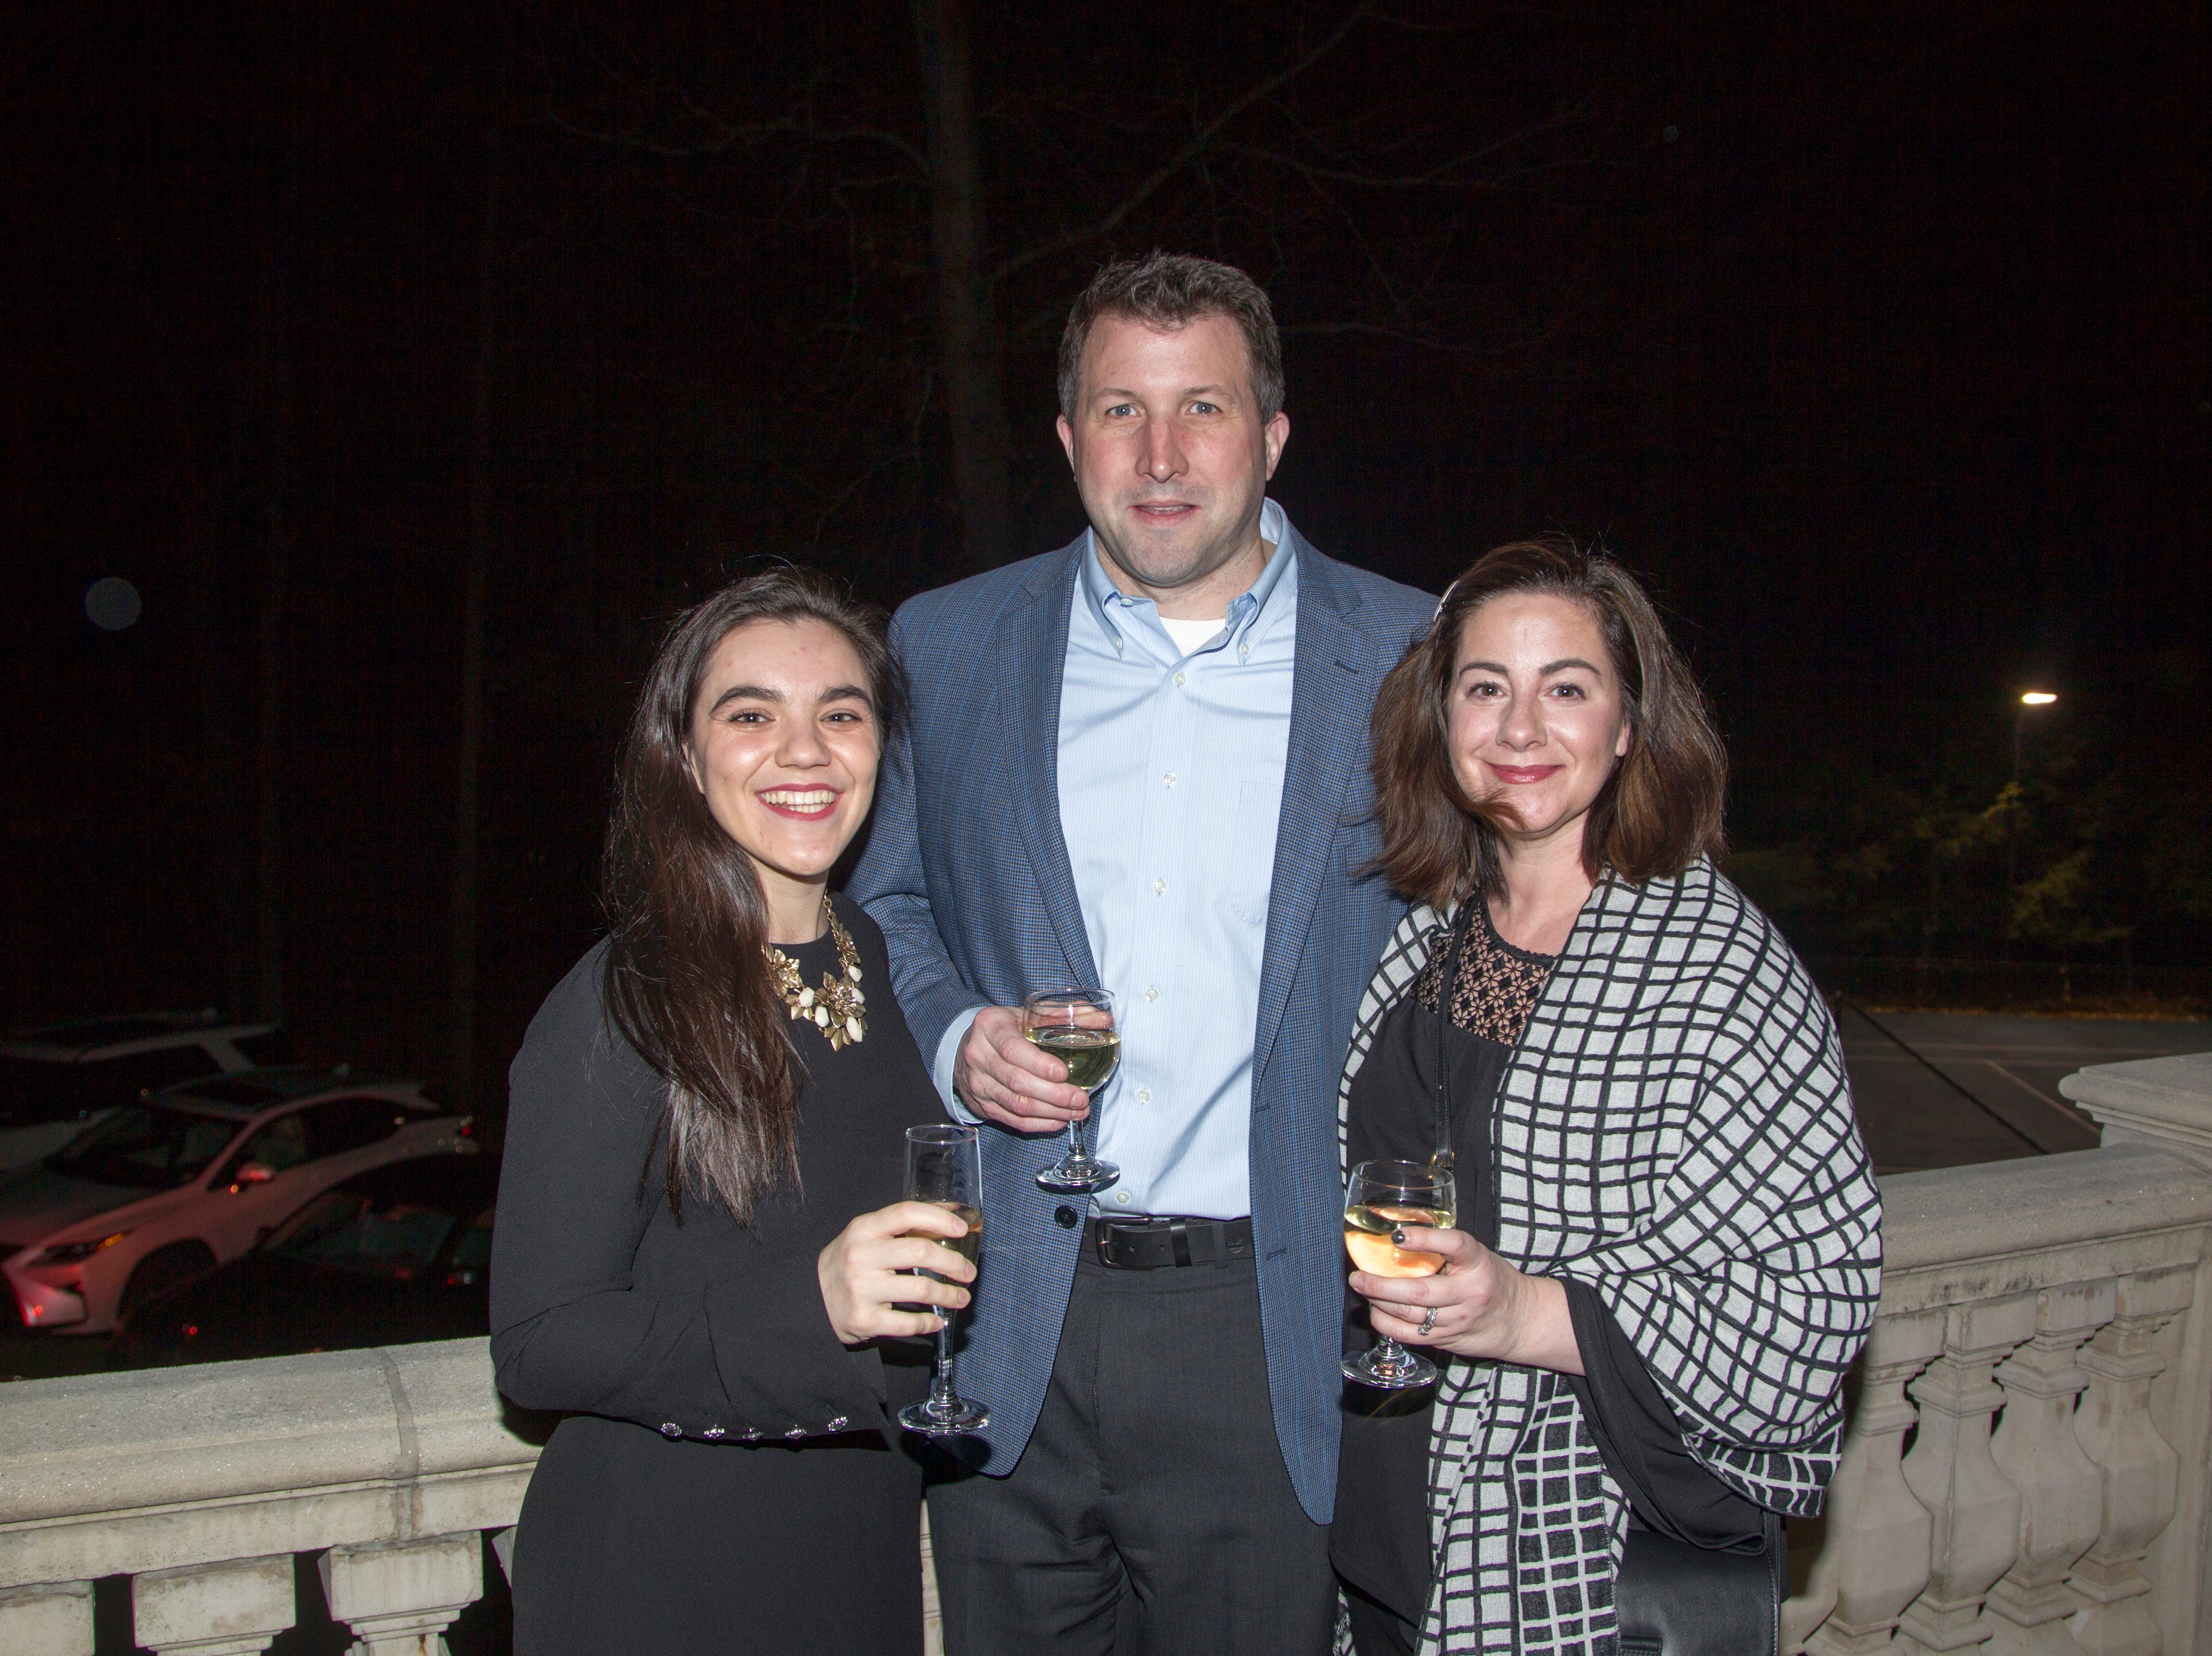 Vanessa Woode, Jeff Mann, Anne Mary Mann. Saddle River Arts Council presents An Evening of Giving Back featureing Eric Genuis in Saddle River. 03/30/2019